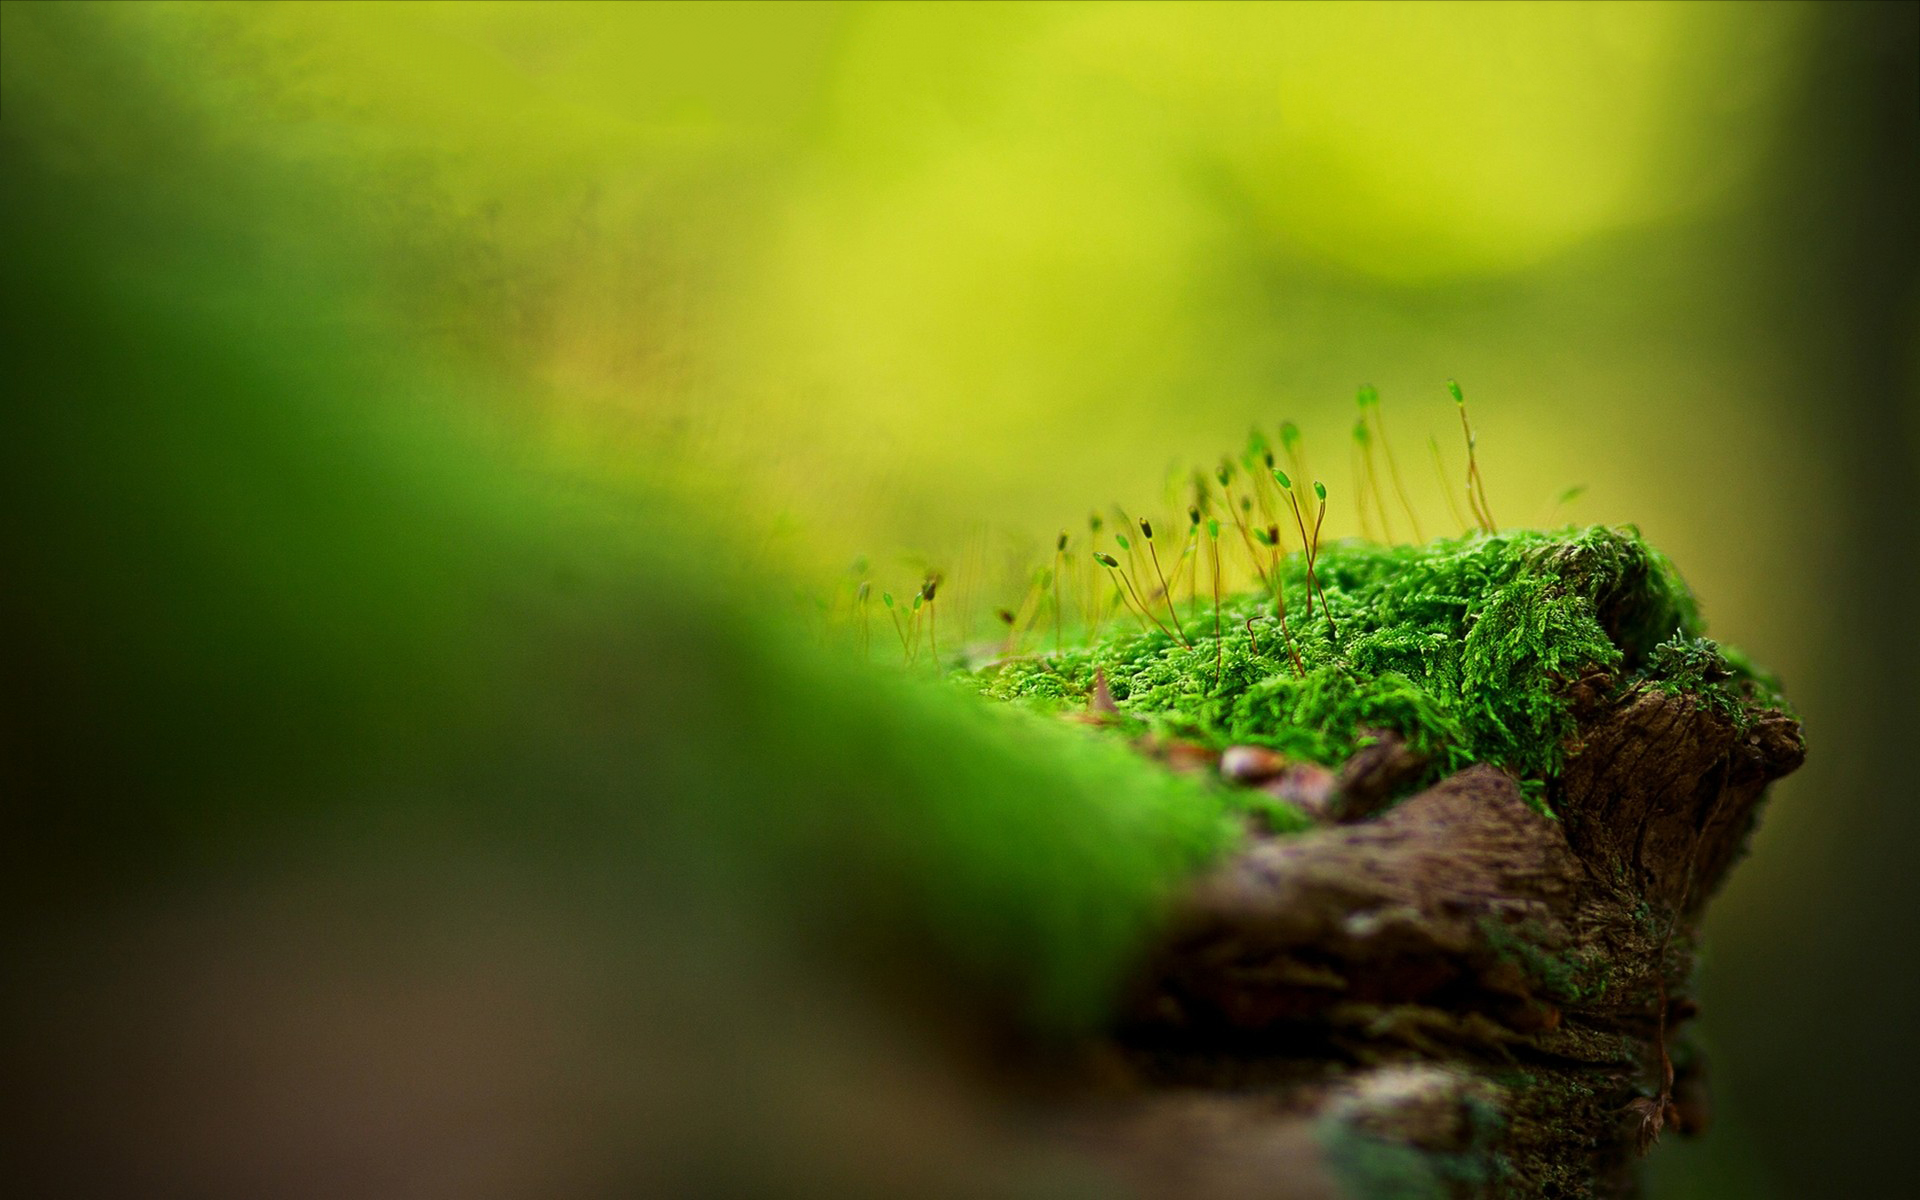 green moss images